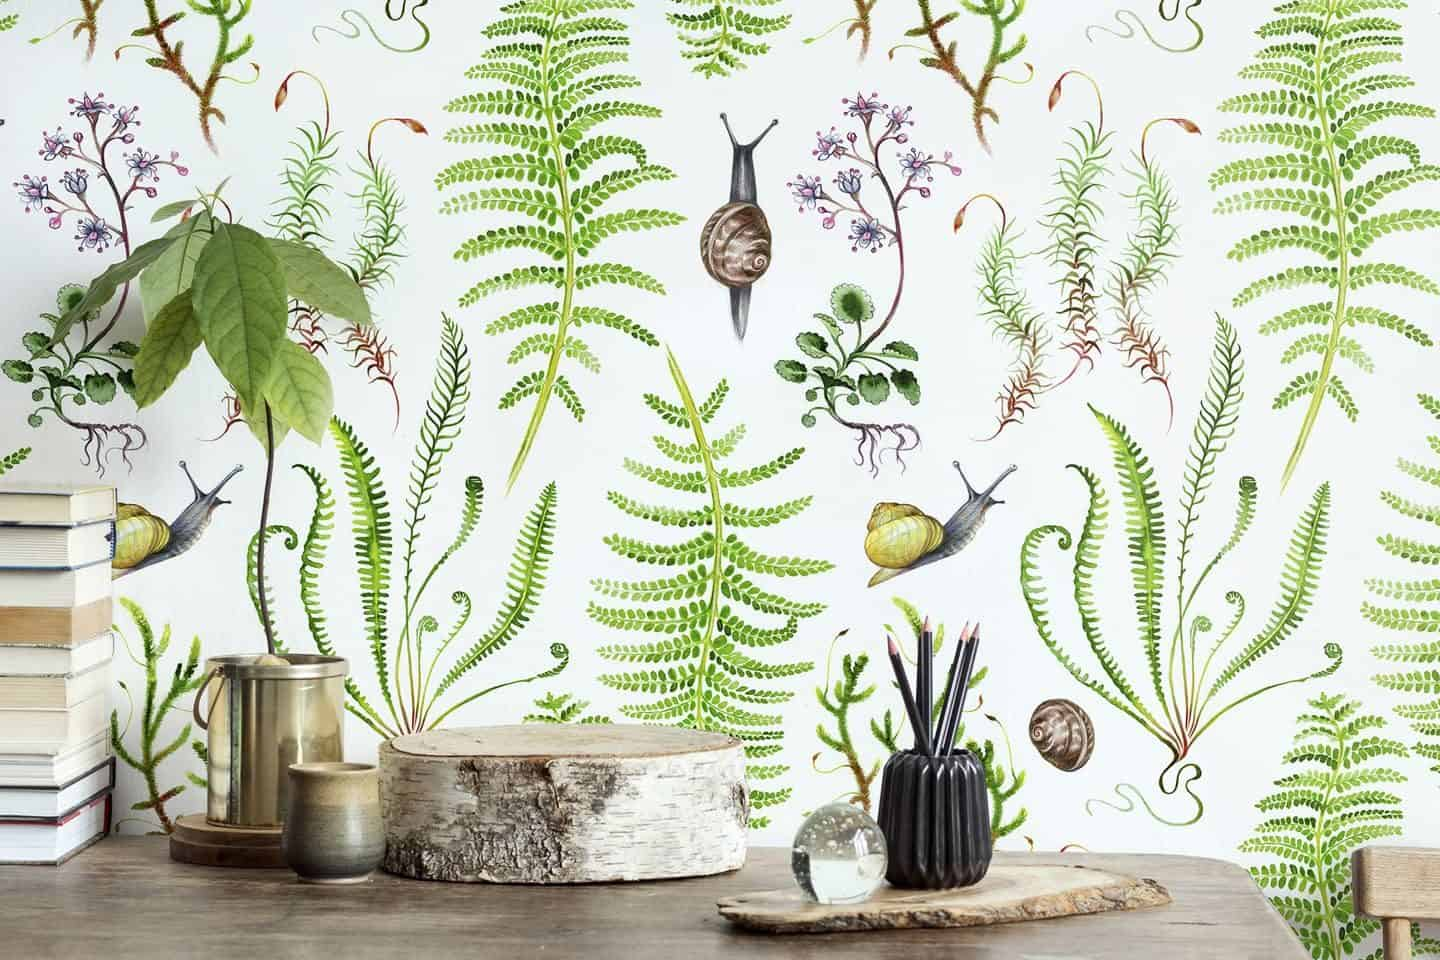 Dawn Chorus Wallpaper by Saga-Mariah Sandberg for Photowall